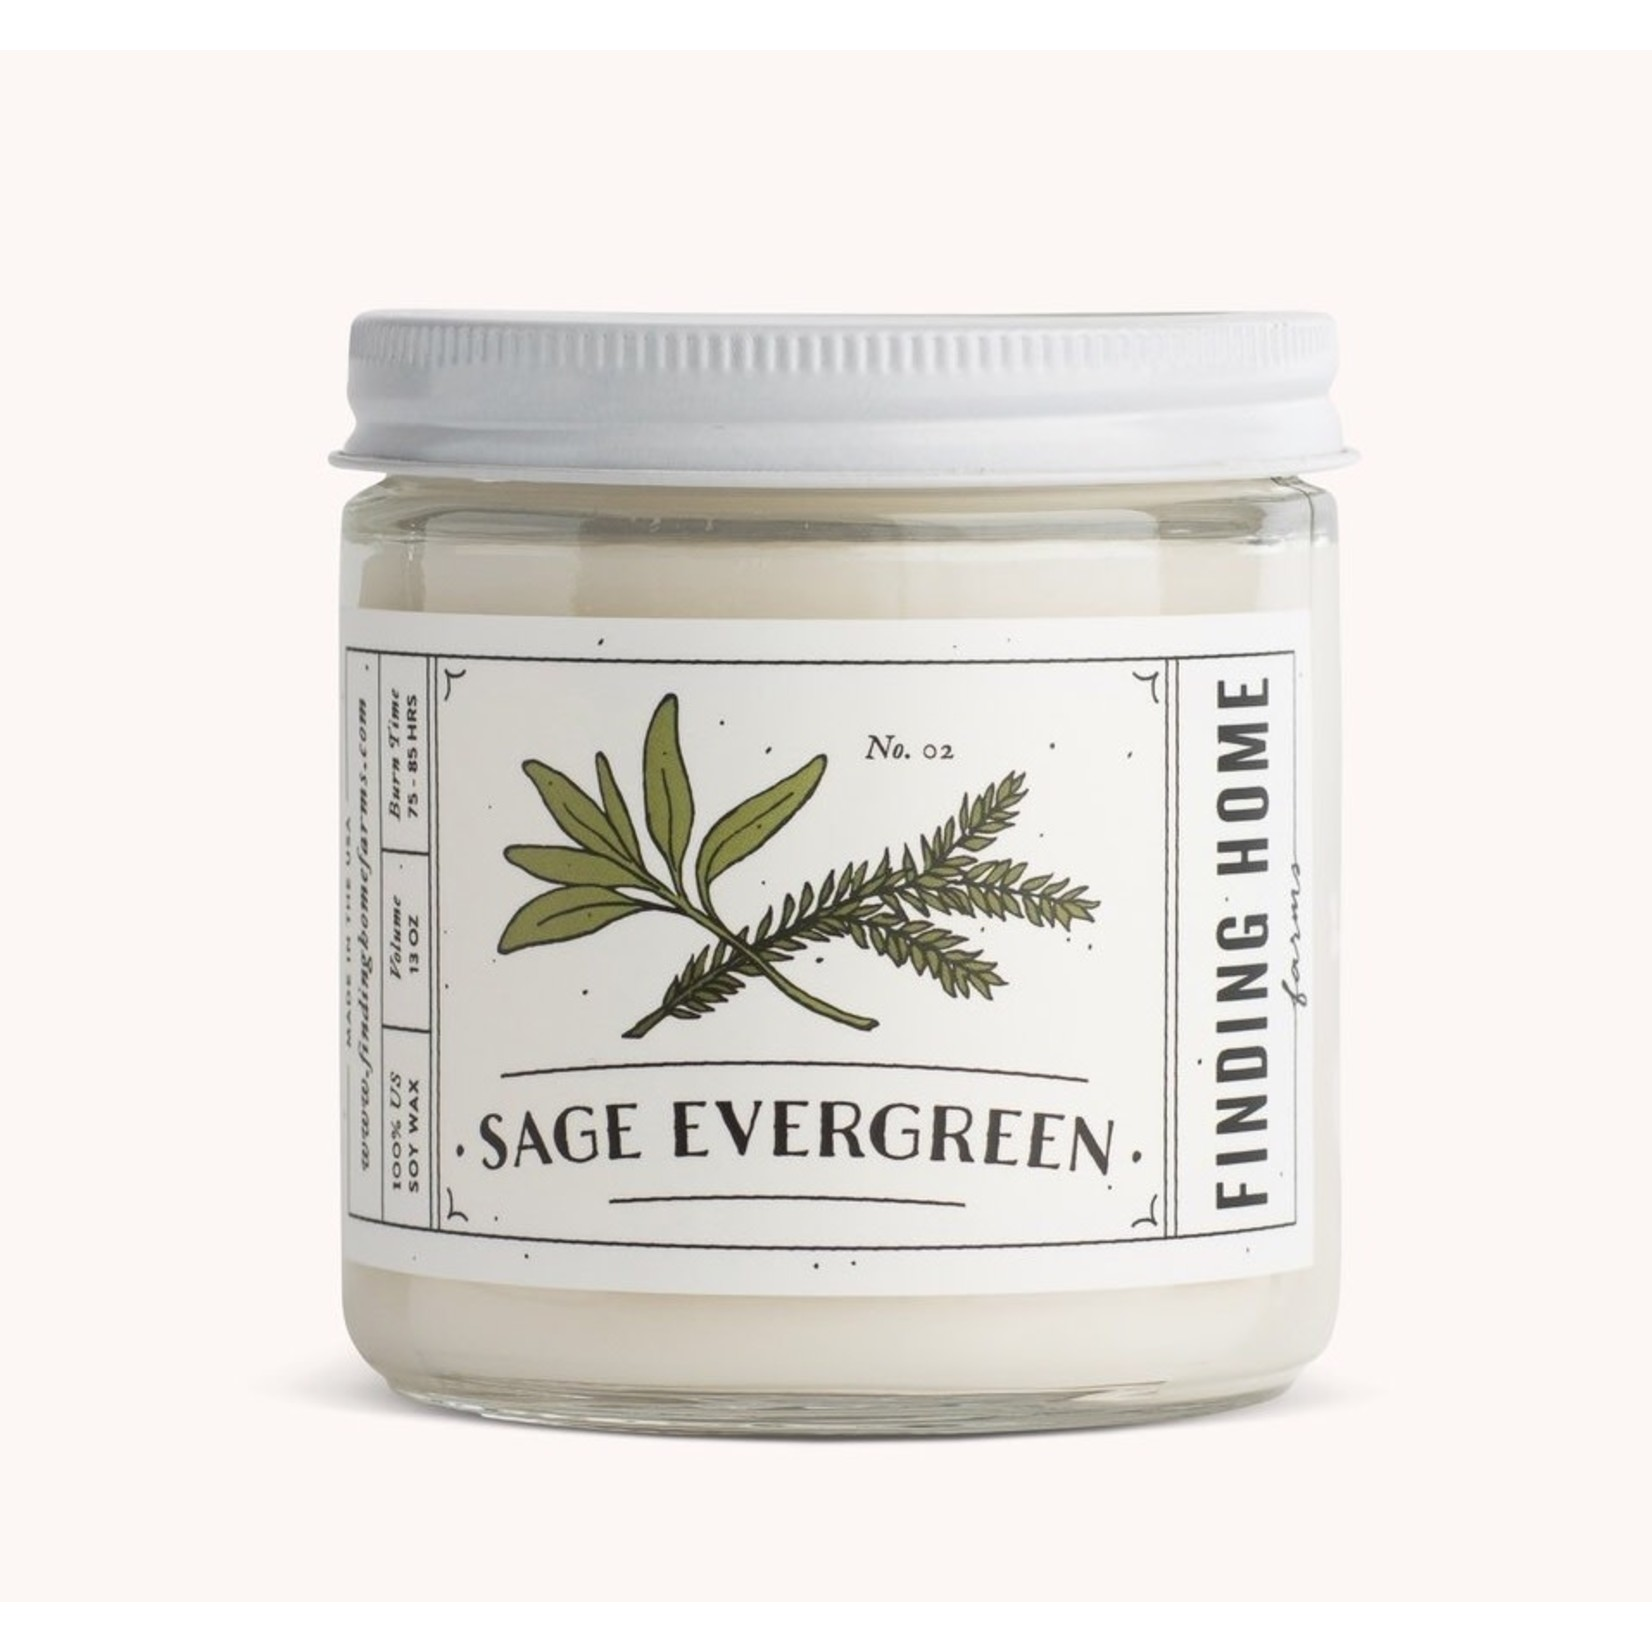 Finding Home Farms Finding home farms l Sage evergreen Soy 13oz. Candle